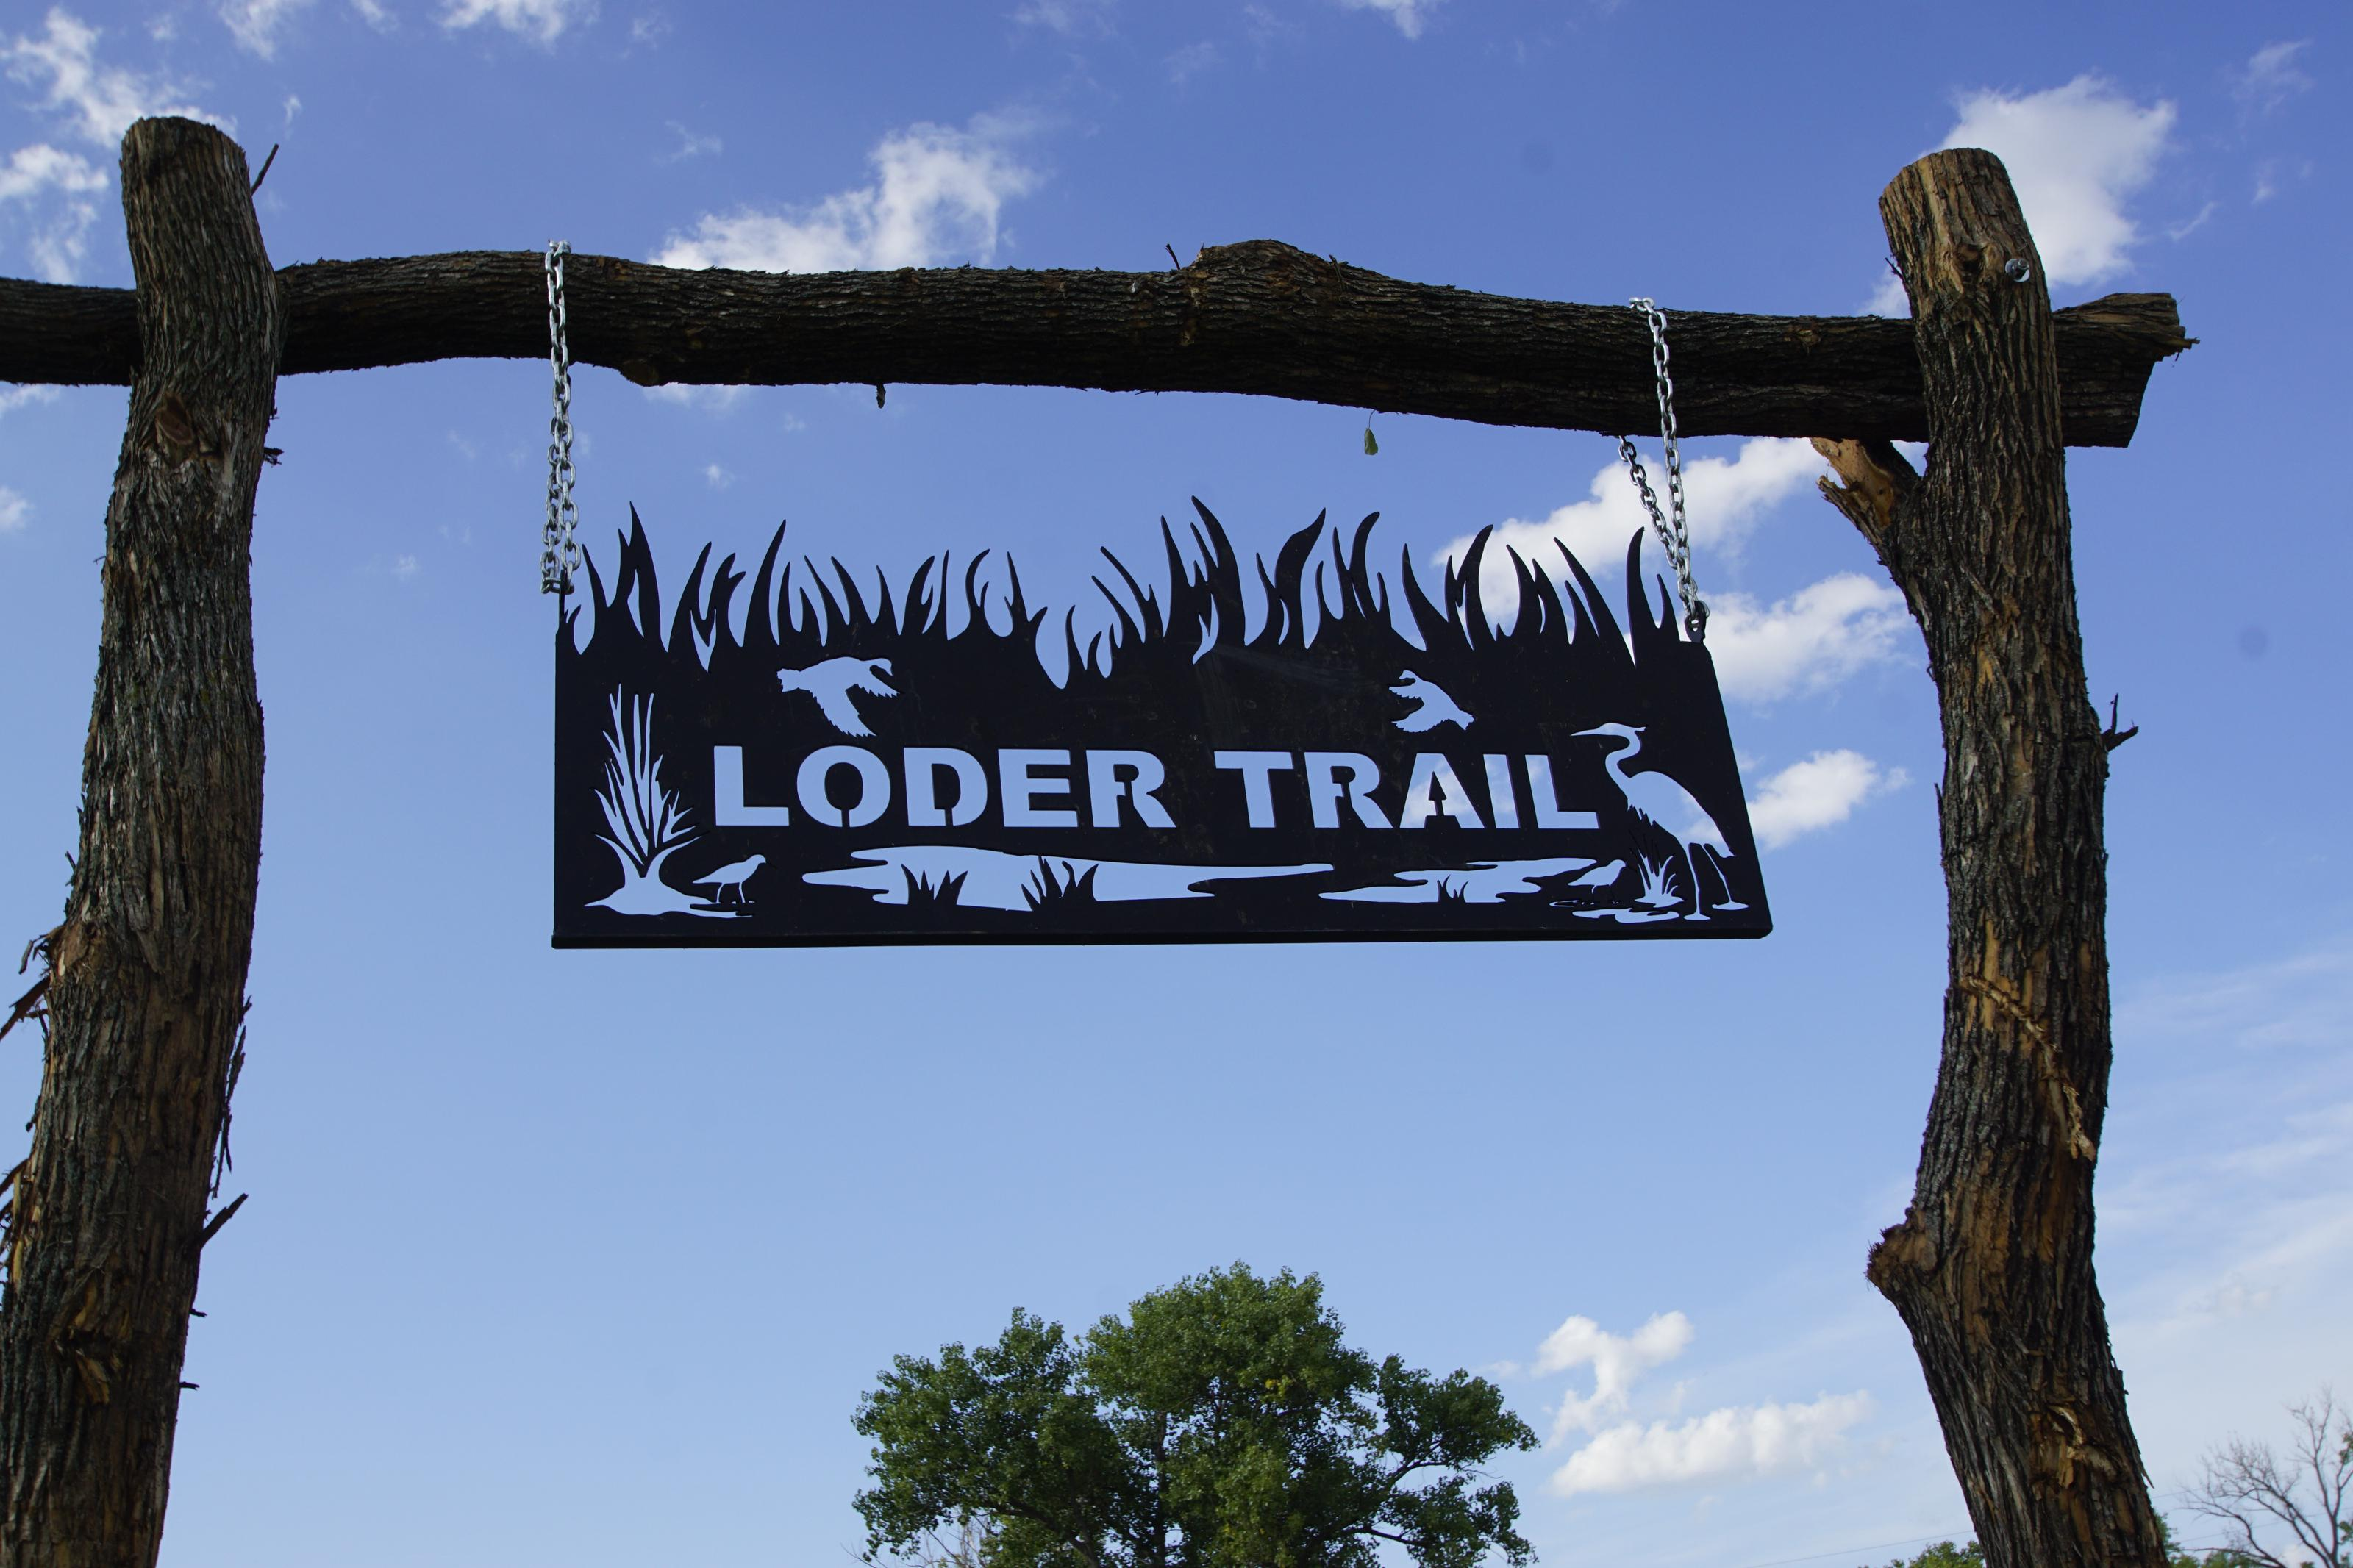 Loder Point Nature TrailLocated in Venango Park